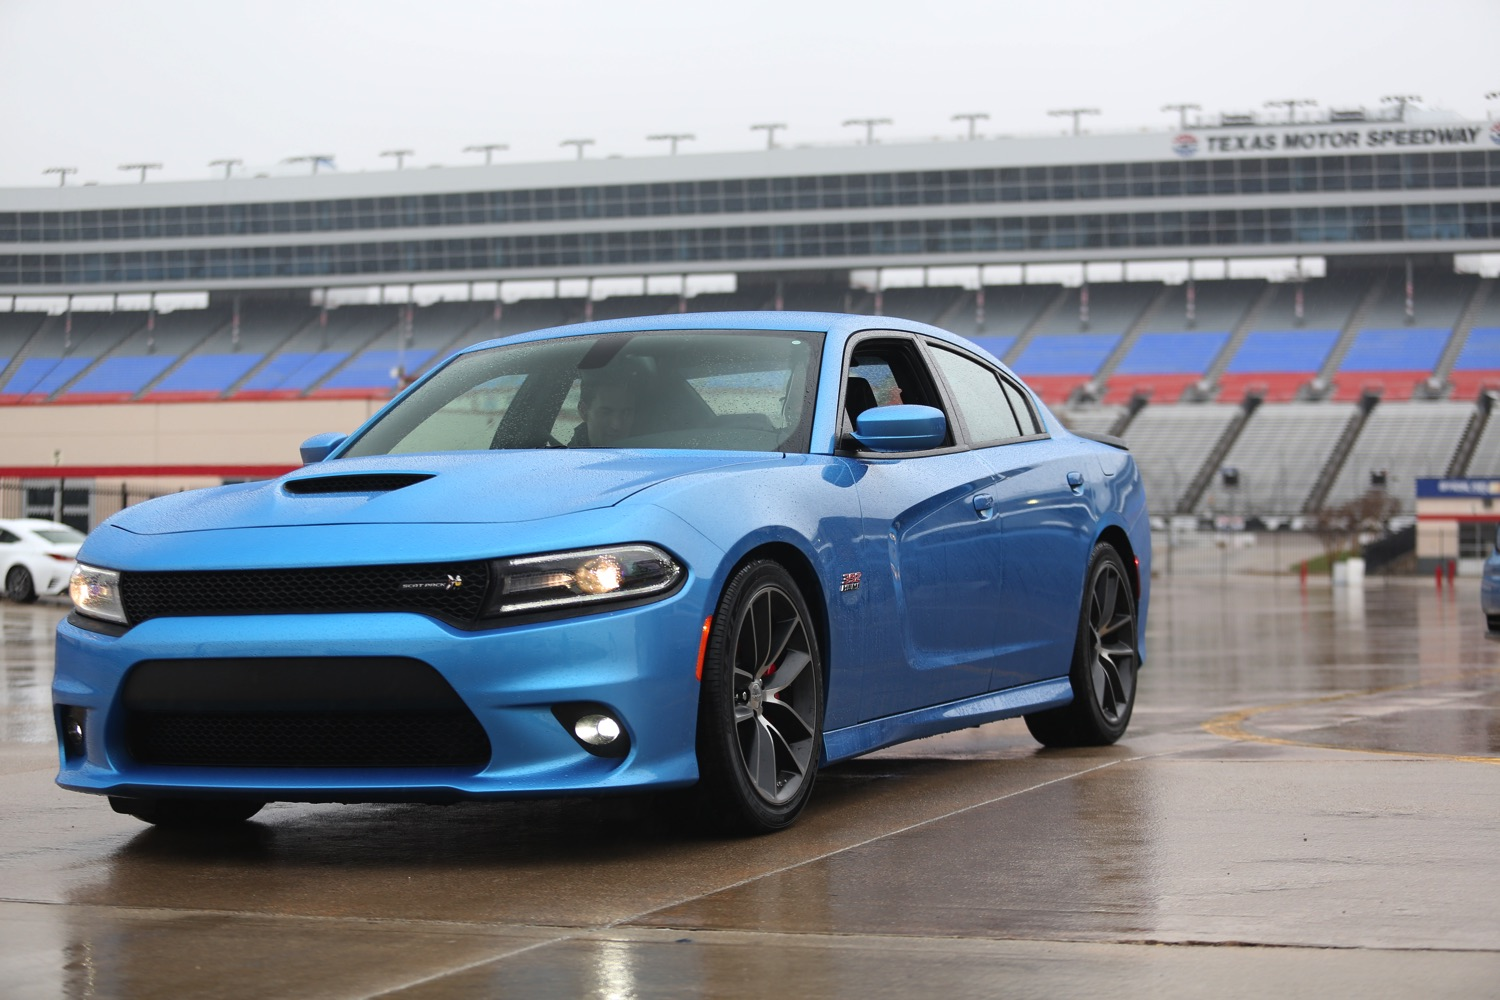 the 2015 dodge charger r t scat pack named the 2015 full size car of texas at the texas auto. Black Bedroom Furniture Sets. Home Design Ideas